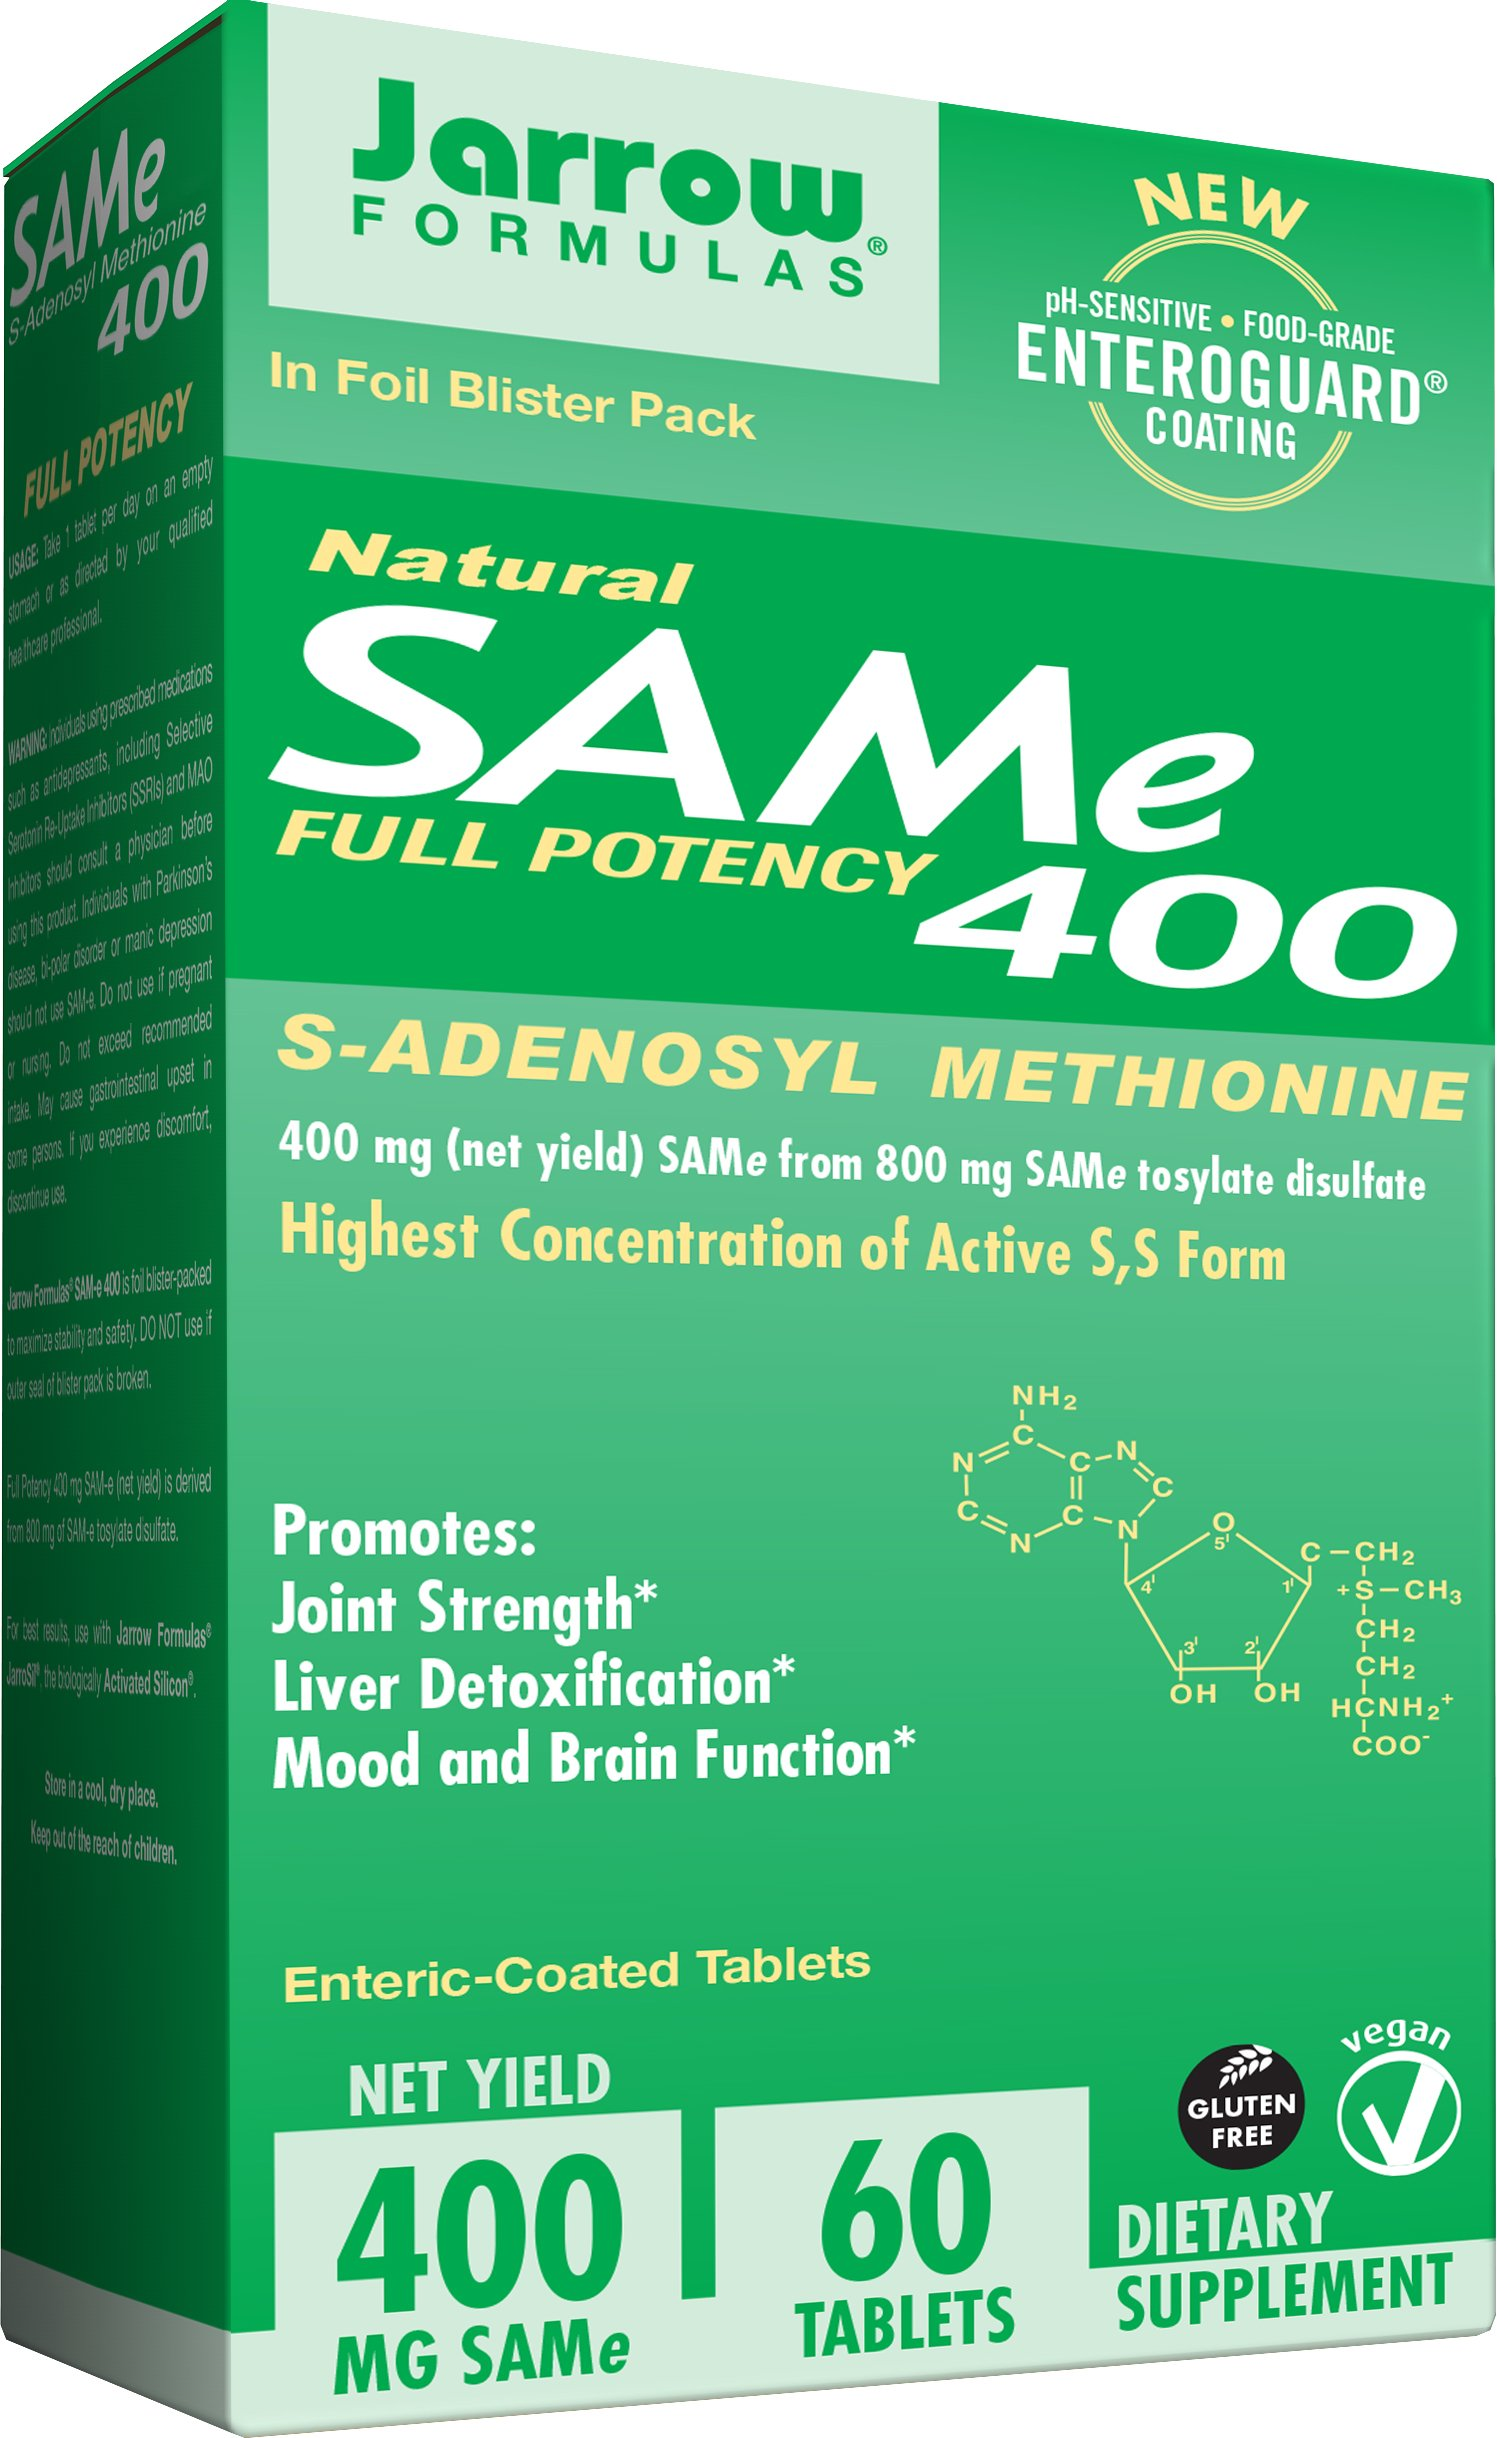 Jarrow Formulas SAM-e, Promotes Joint Strength and Mood, 400 mg, 60 Enteric-Coated Tabs